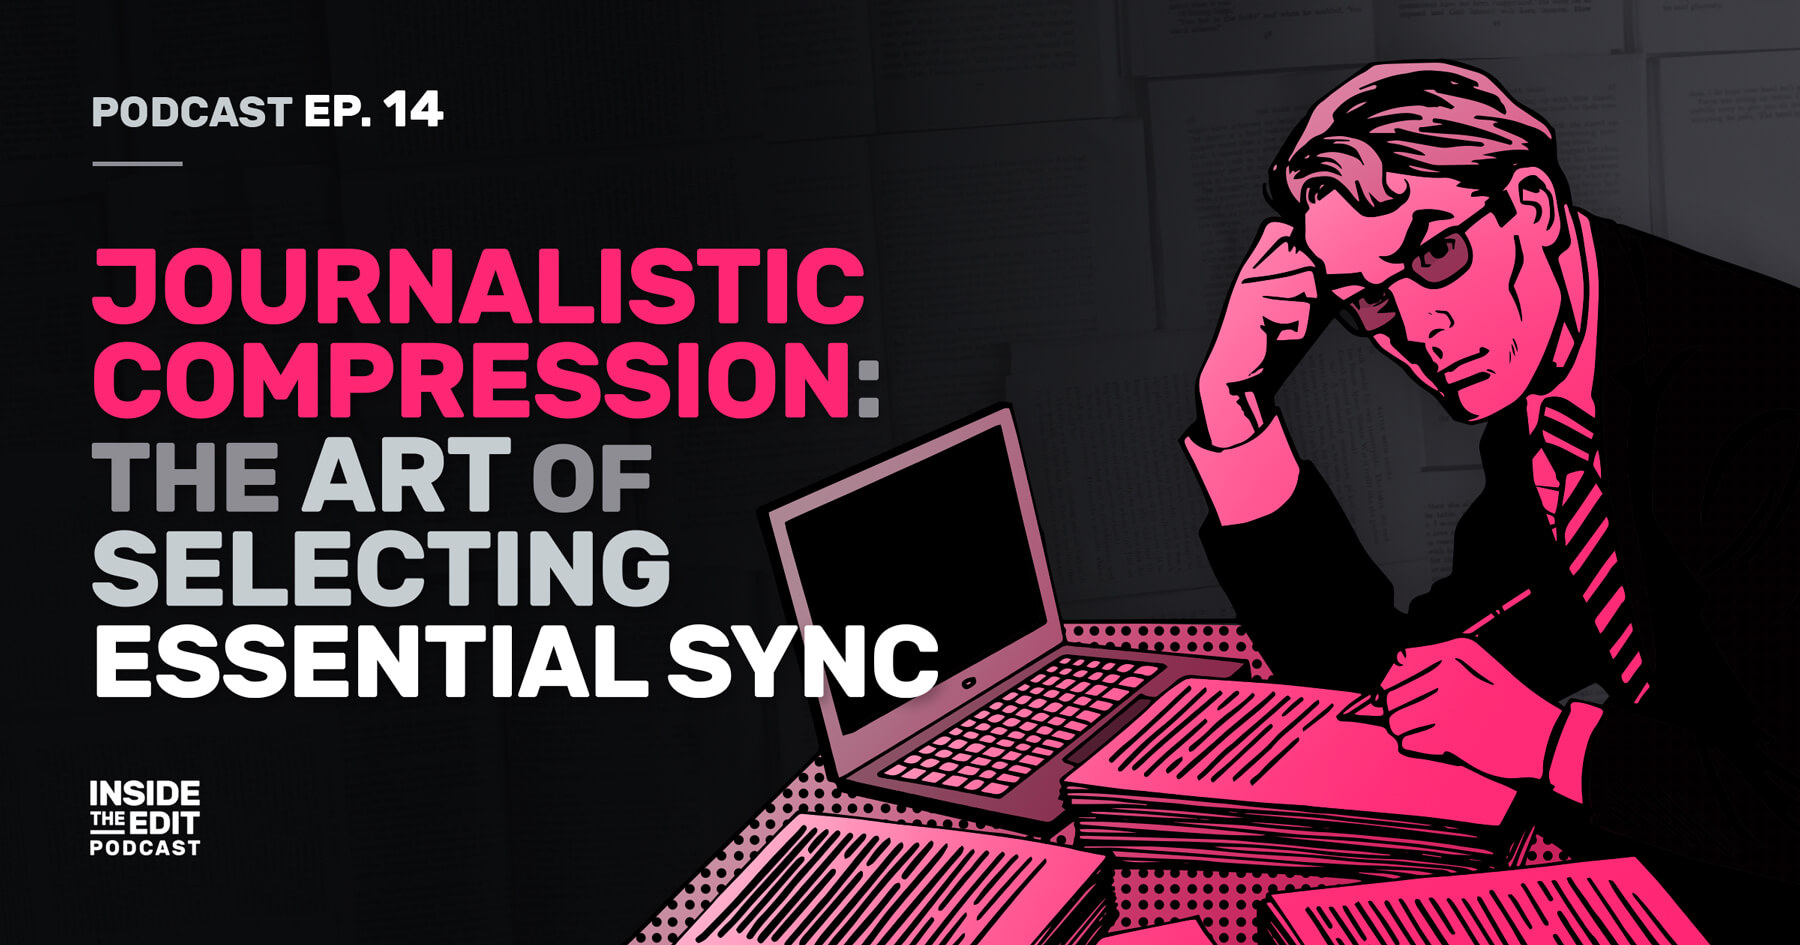 Journalistic Compression: The Art of Selecting Essential Sync